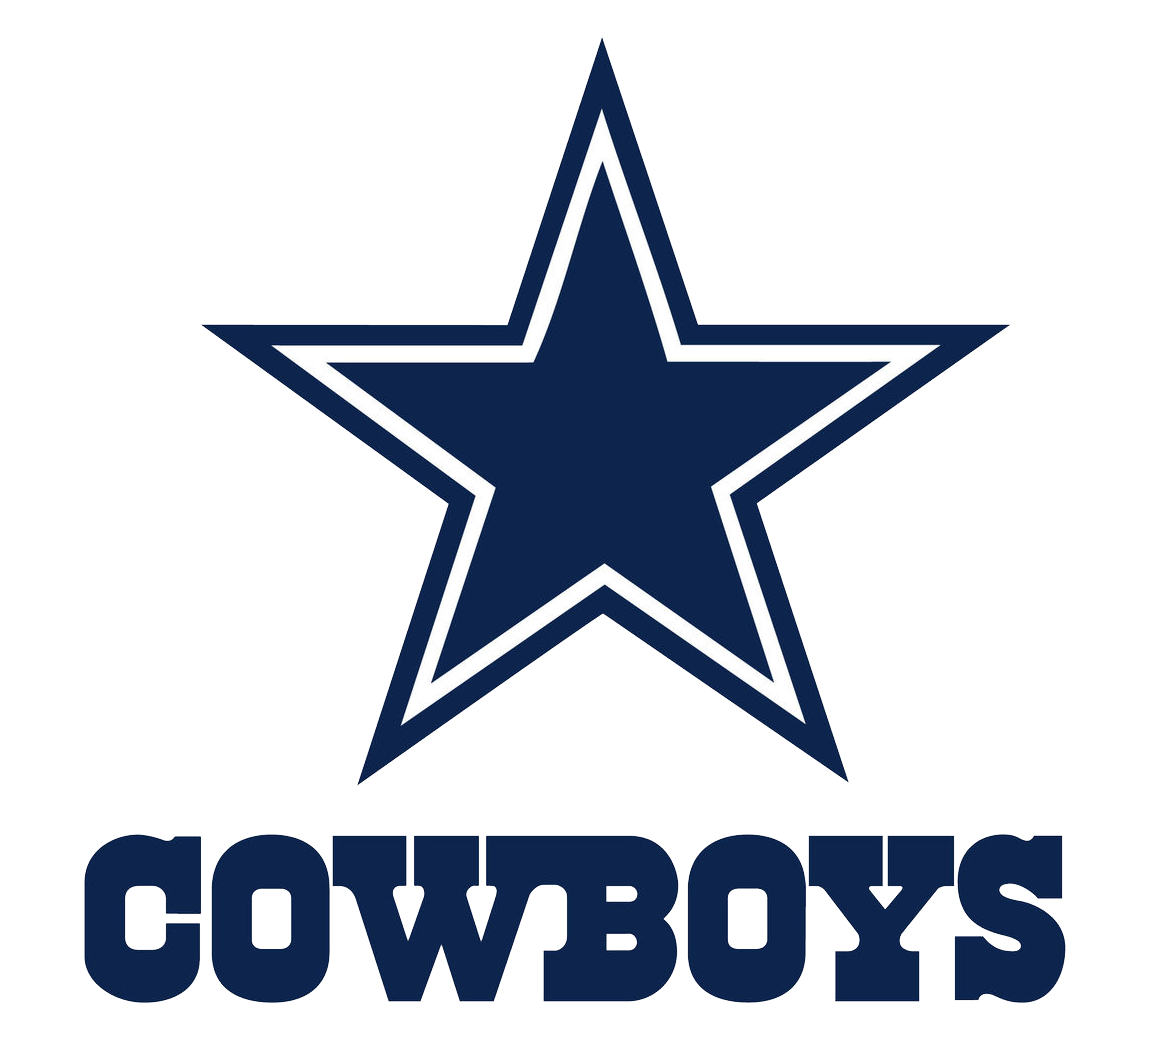 Meaning Dallas Cowboys logo and symbol.